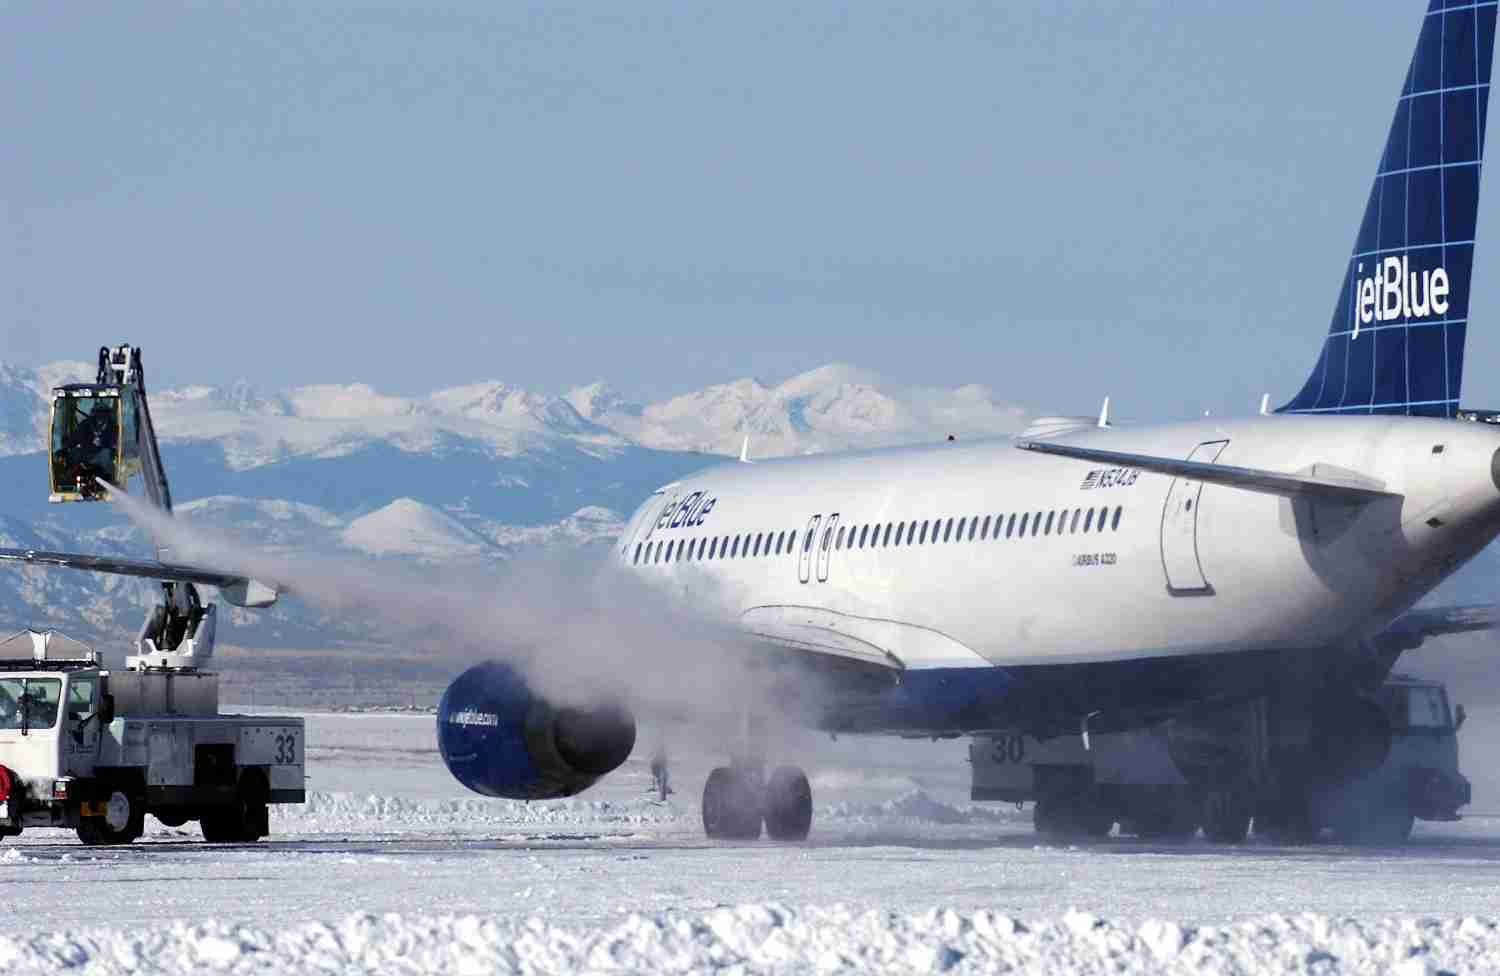 DENVER - DECEMBER 22:  De-Icing crews remove snow and ice from a plane that has been grounded due to a recent blizzard at Denver International Airport December 22, 2006 in Denver, Colorado. On Friday the clean-up began after the storm left thousands of travelers stranded and also caused a shut down of the city and highways exiting Denver.. (Photo by Thomas Cooper/Getty Images)